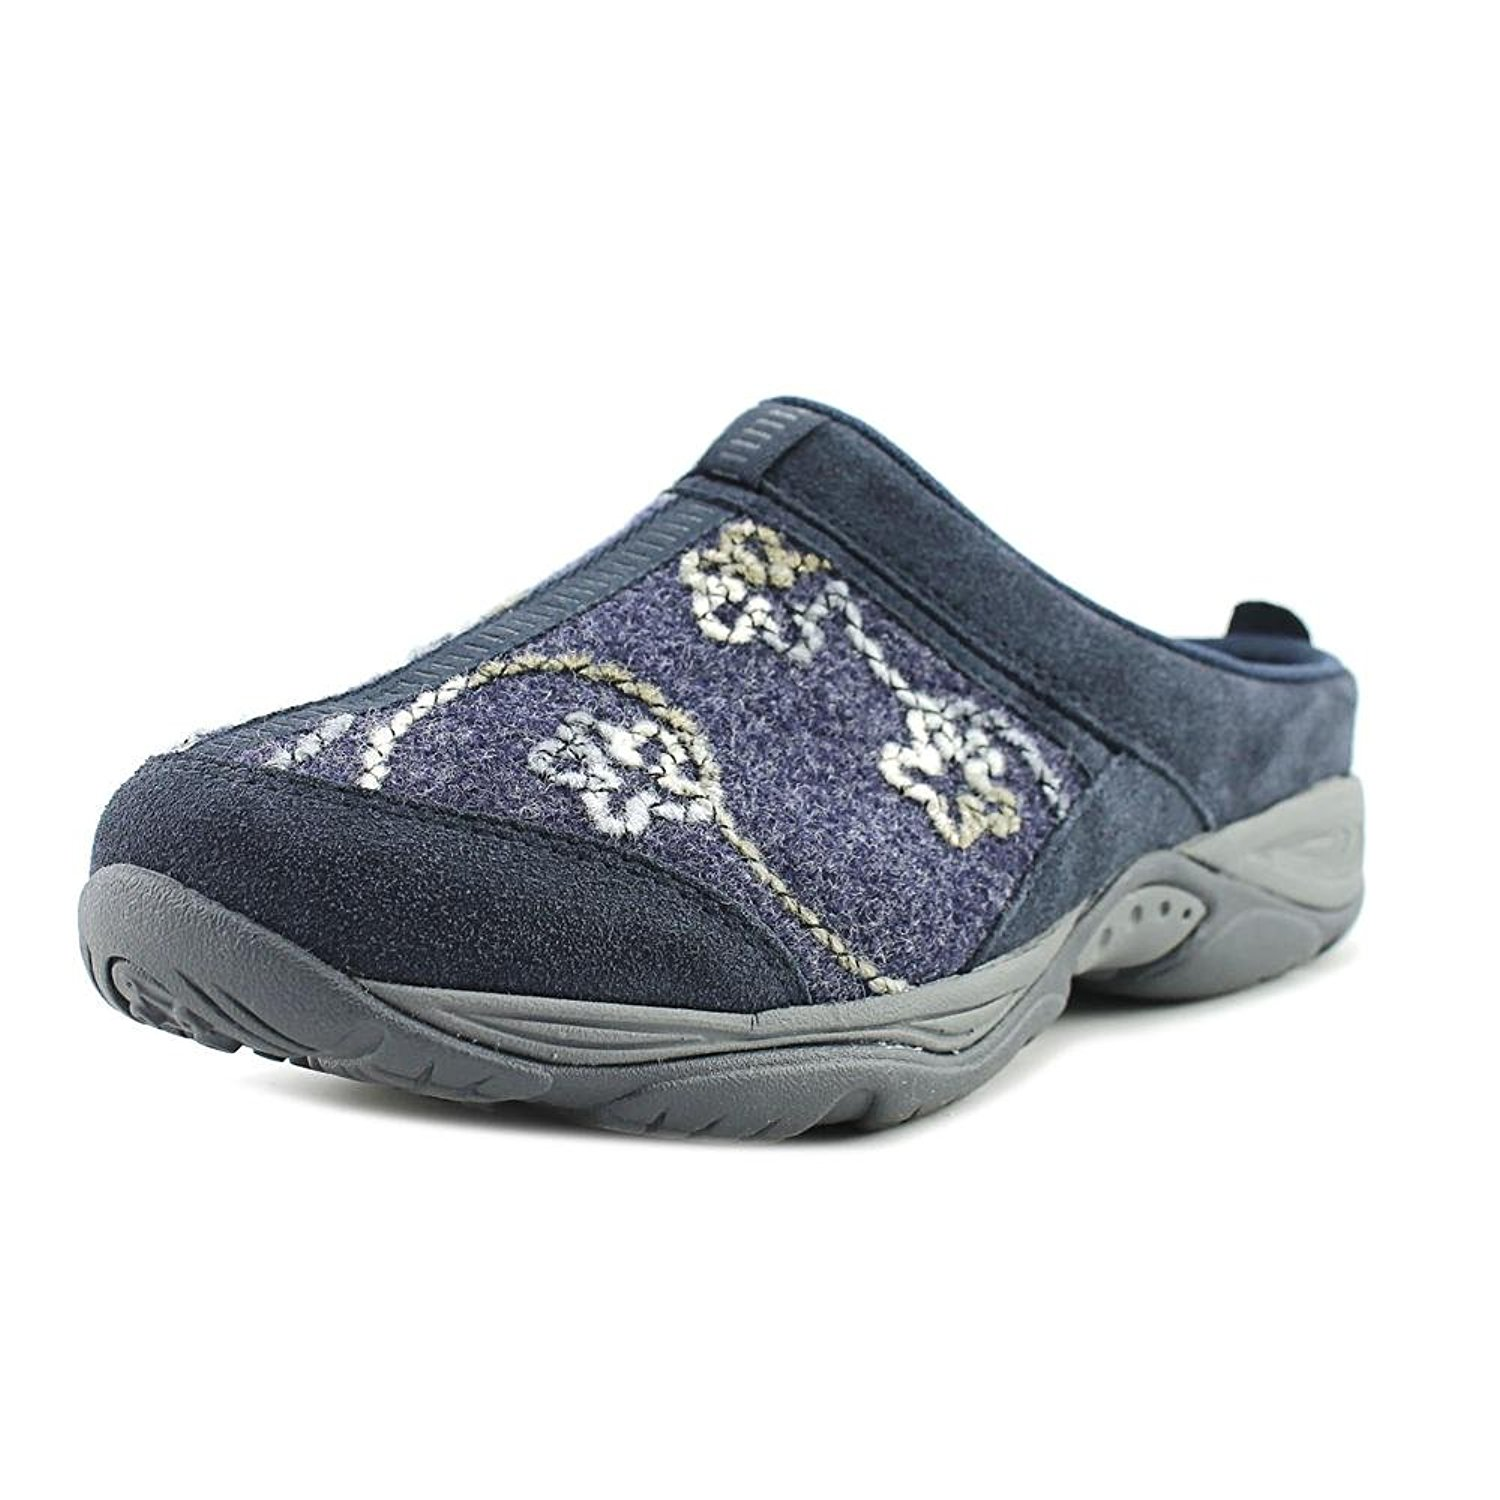 Spring Step Womens MANILA Leather Closed Toe Clogs Blue/MULTI Size 9.0 QBS9